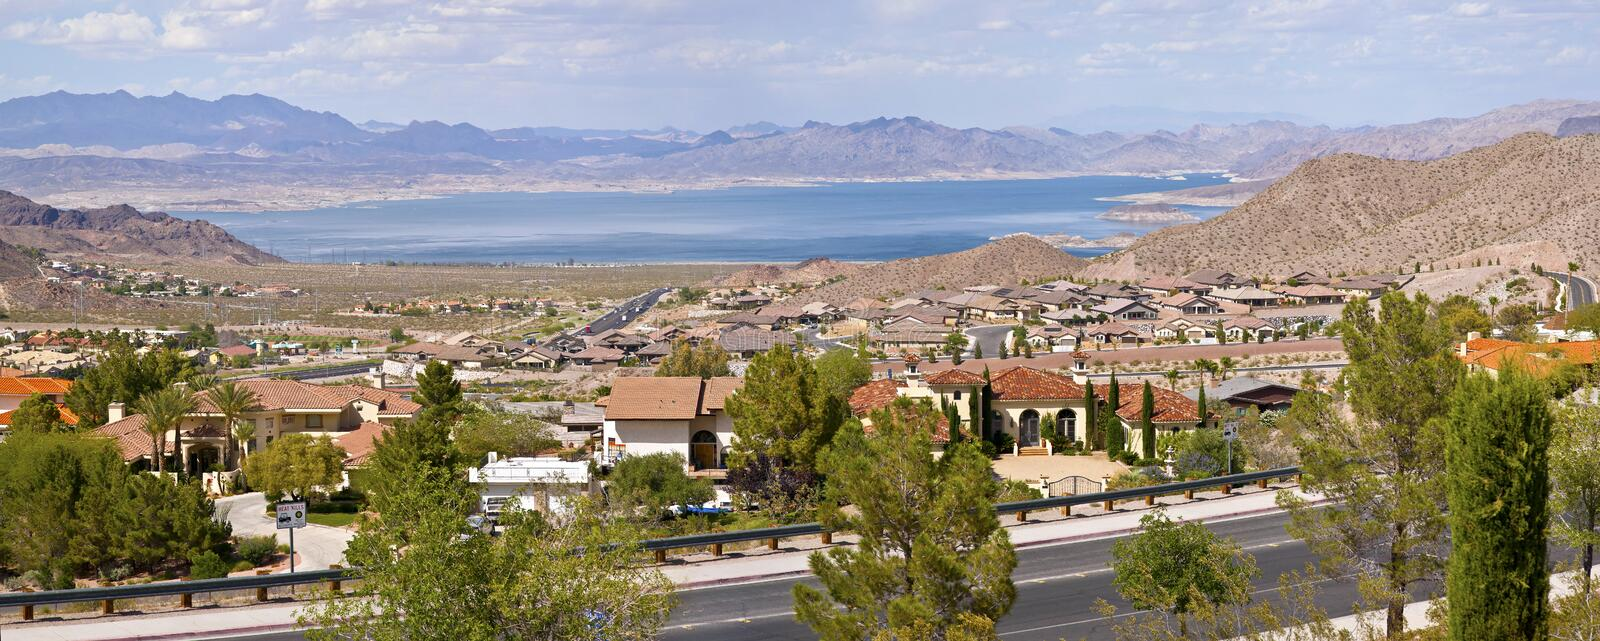 Lake Meade Bolder City Nevada suburb and mountains panorama. Boulder City Nevada suburbs and lake Meade with surrounding mountains panorama royalty free stock photography